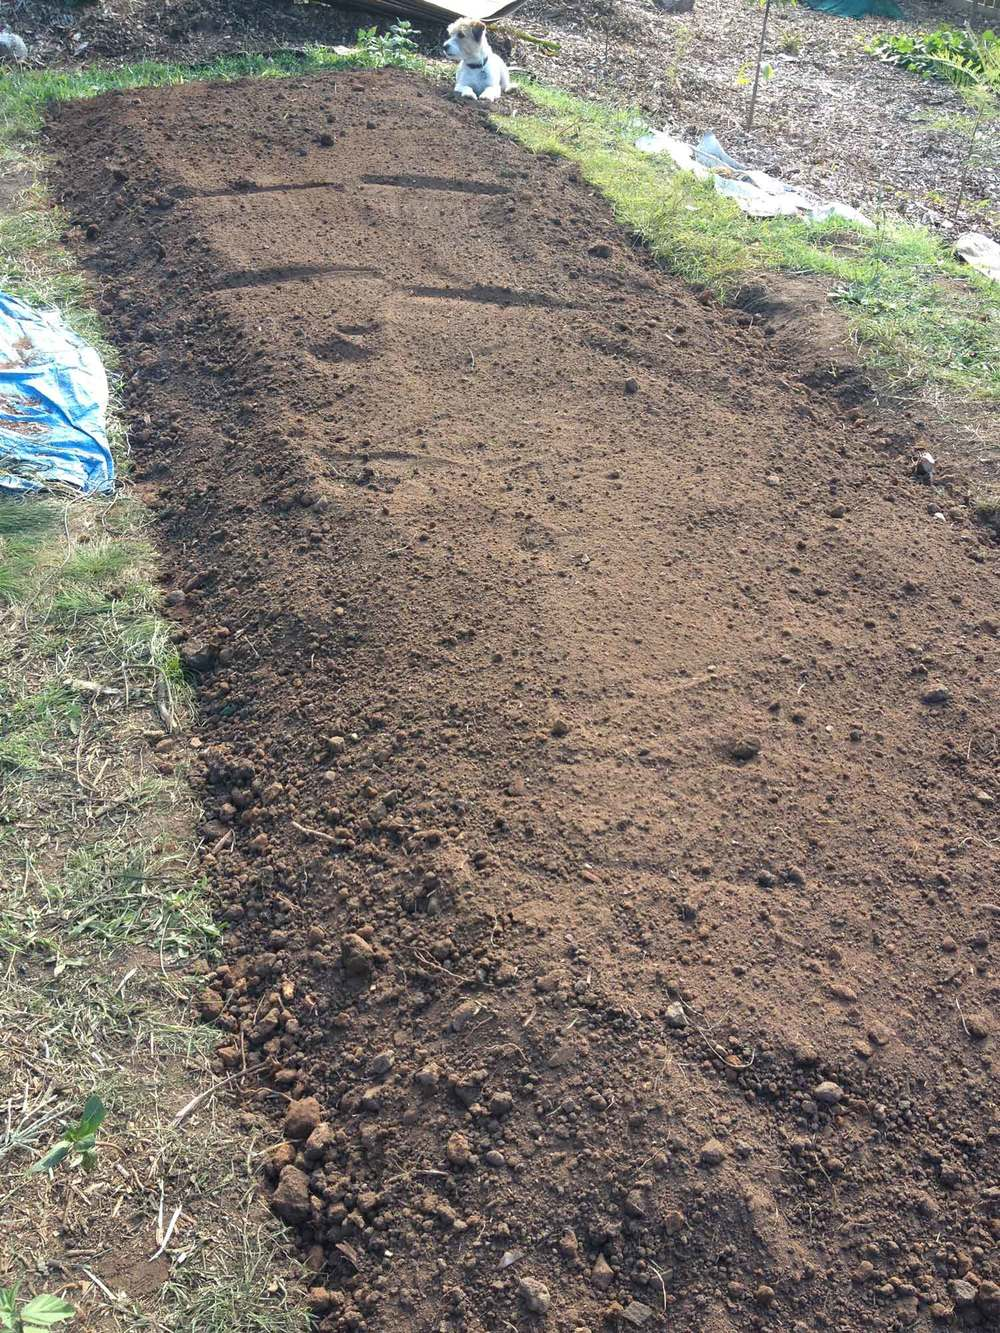 Biointensive garden bed prepared using the double digging method.